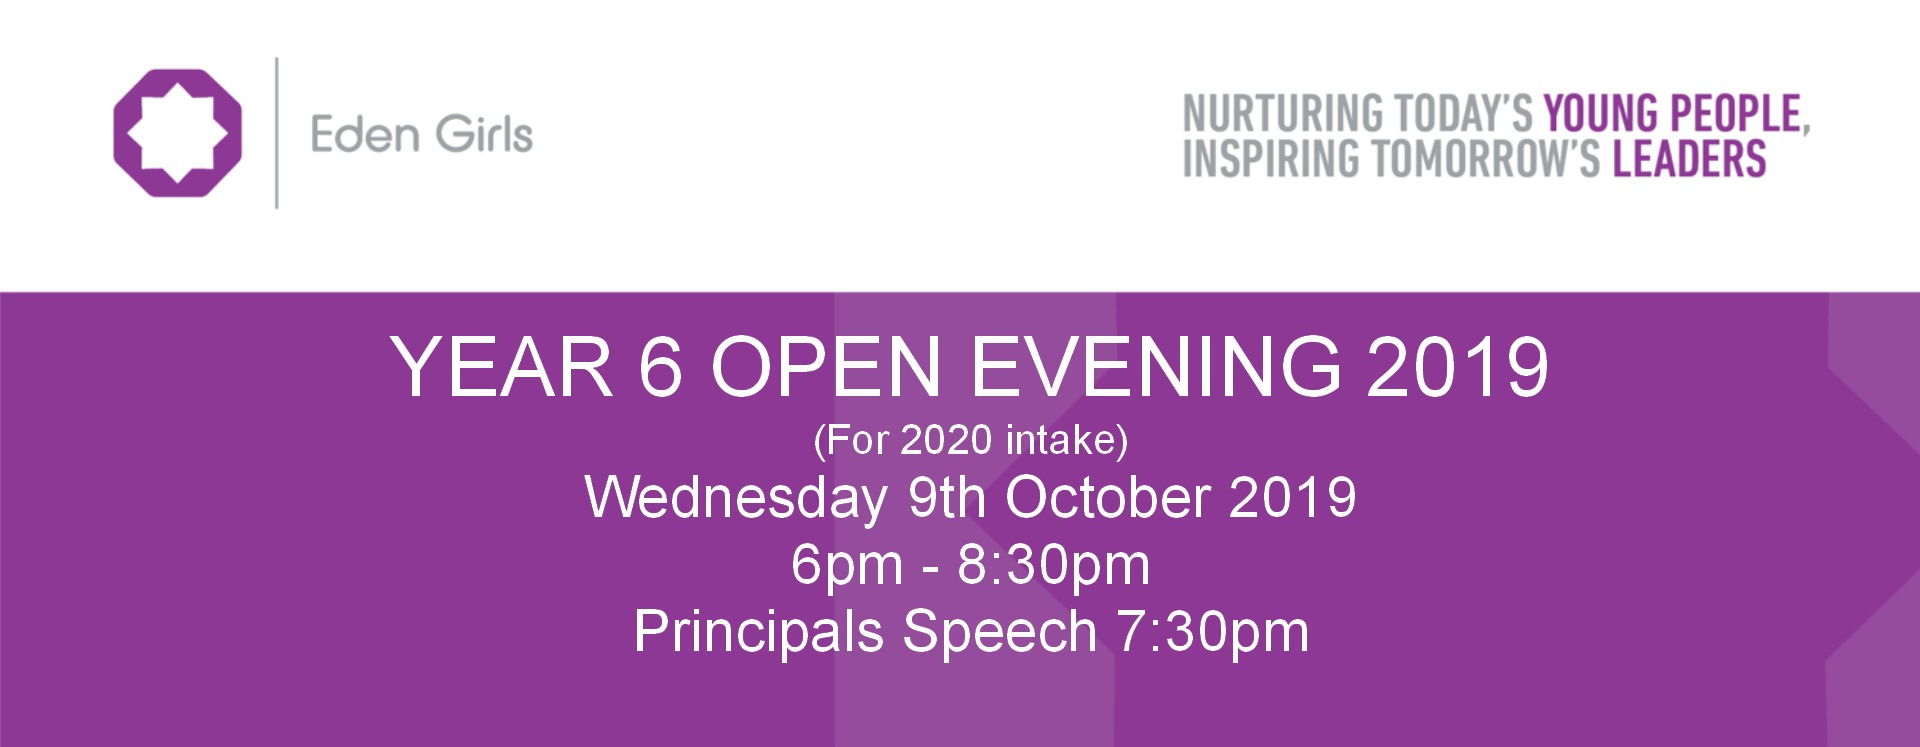 Our Open Evening